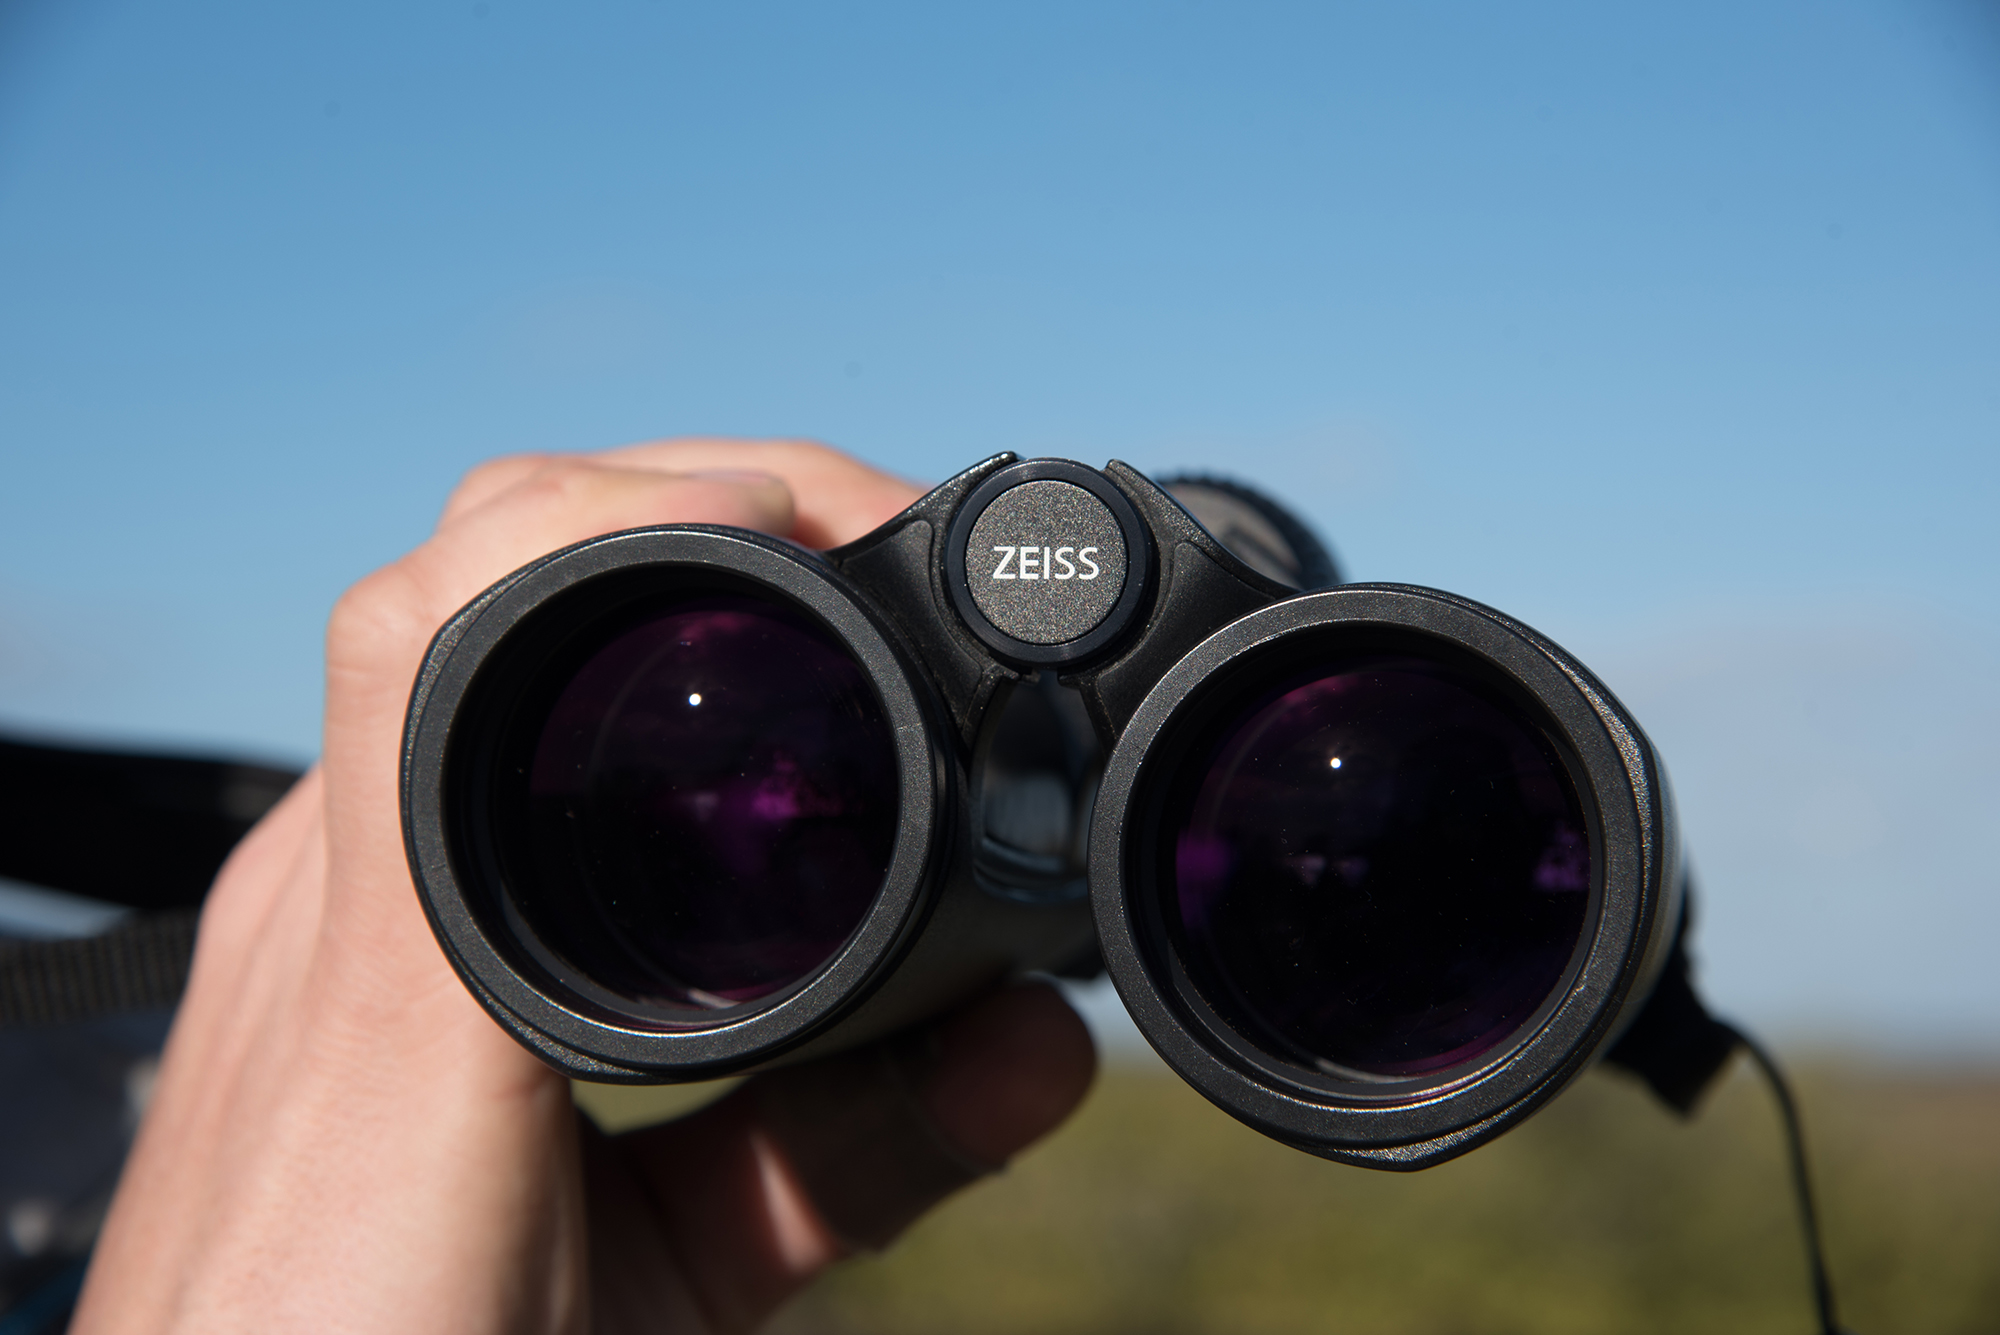 Learn how to keep your binoculars clean with an optics cleaning kit.